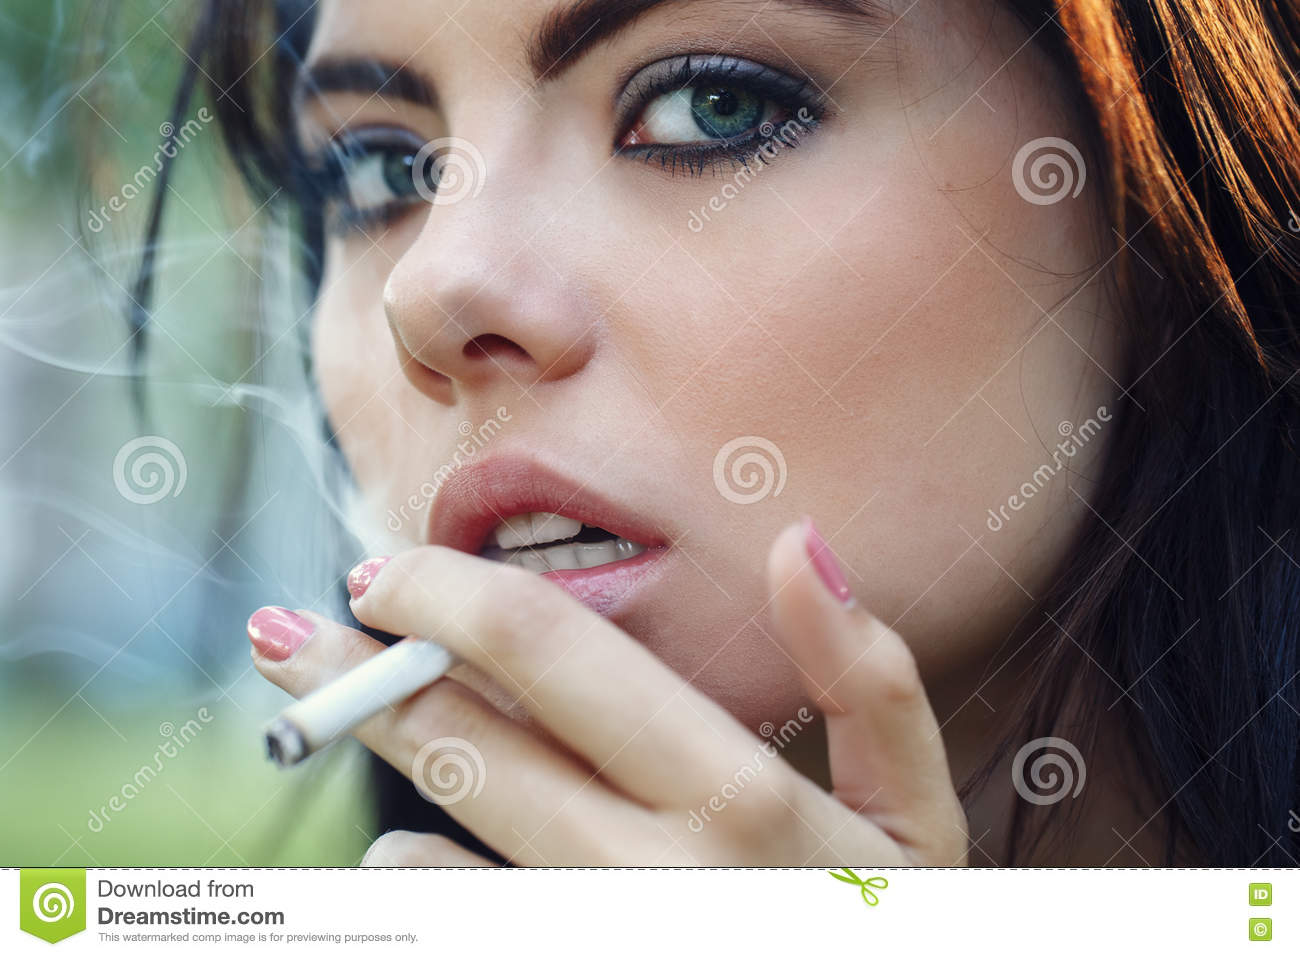 women smoking closeup actress - photo #35